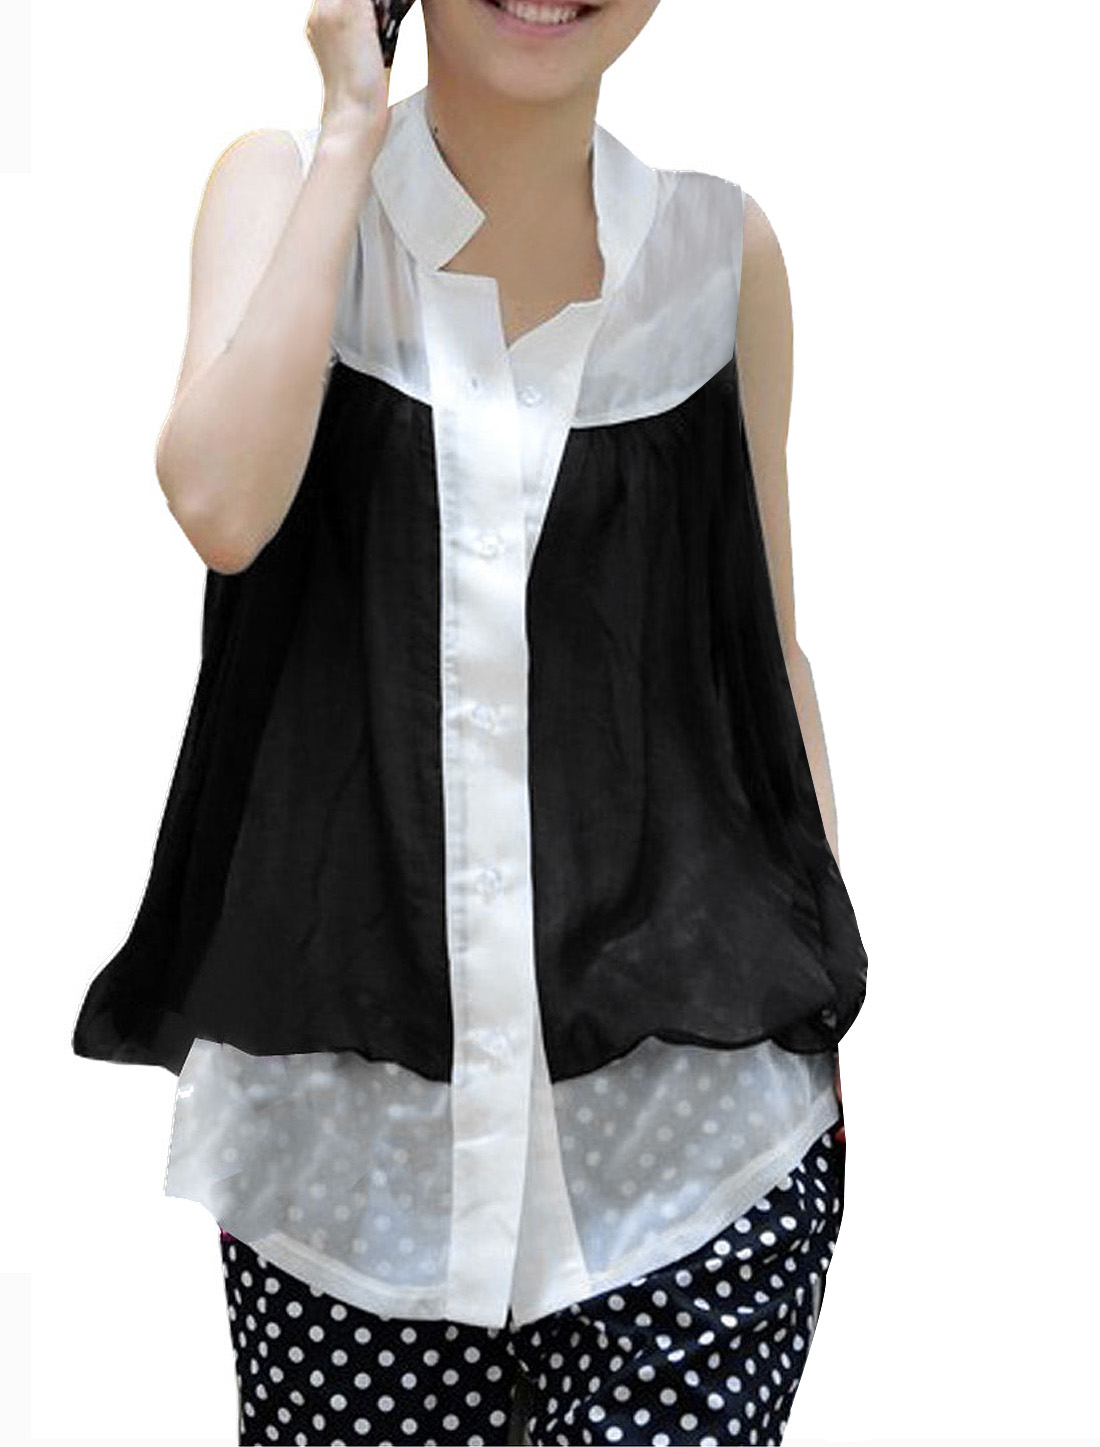 Fashion Sleeveless Black White Chiffon Vest Bluose Top XS for Women